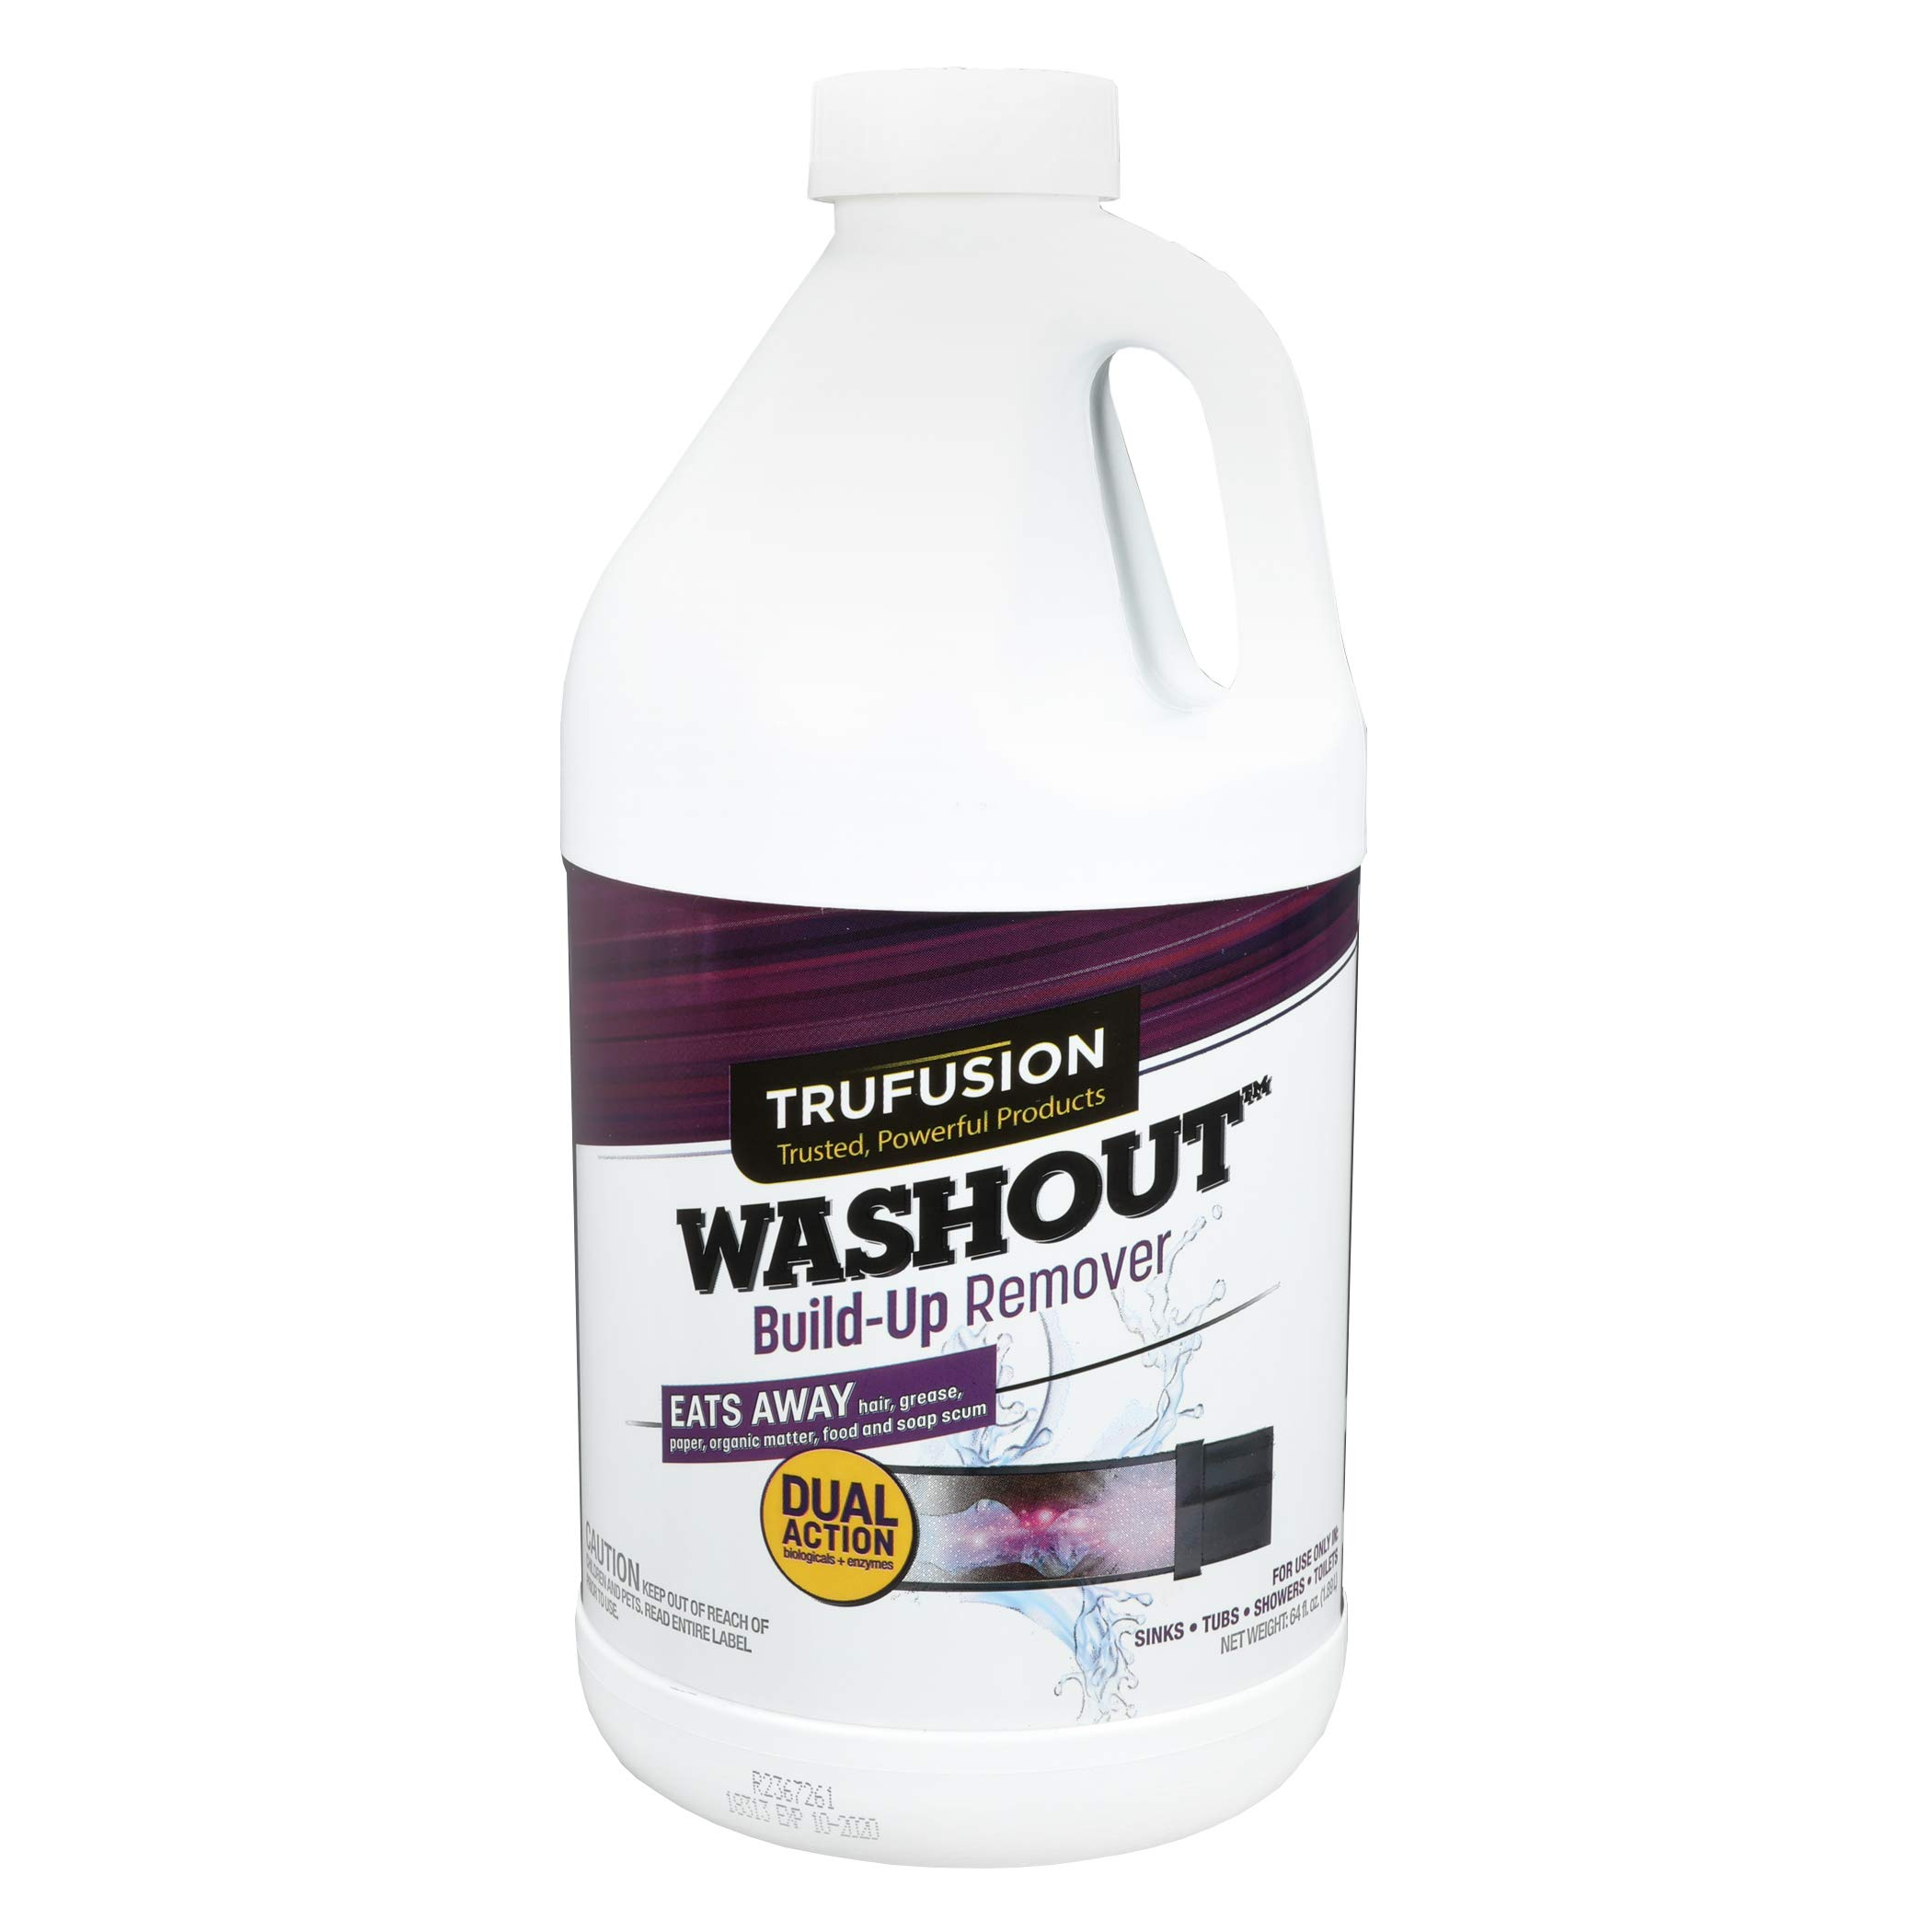 Washout 10966 | Drain Cleaner Build-Up Remover |Enzymes Liquid Drain Opener| Monthly Drain Treatments Prevents Clogs | Septic Safe | 4-8 Doses, 64 oz. | Controls Odors Shower,Tub,Toilet, Sink Drains